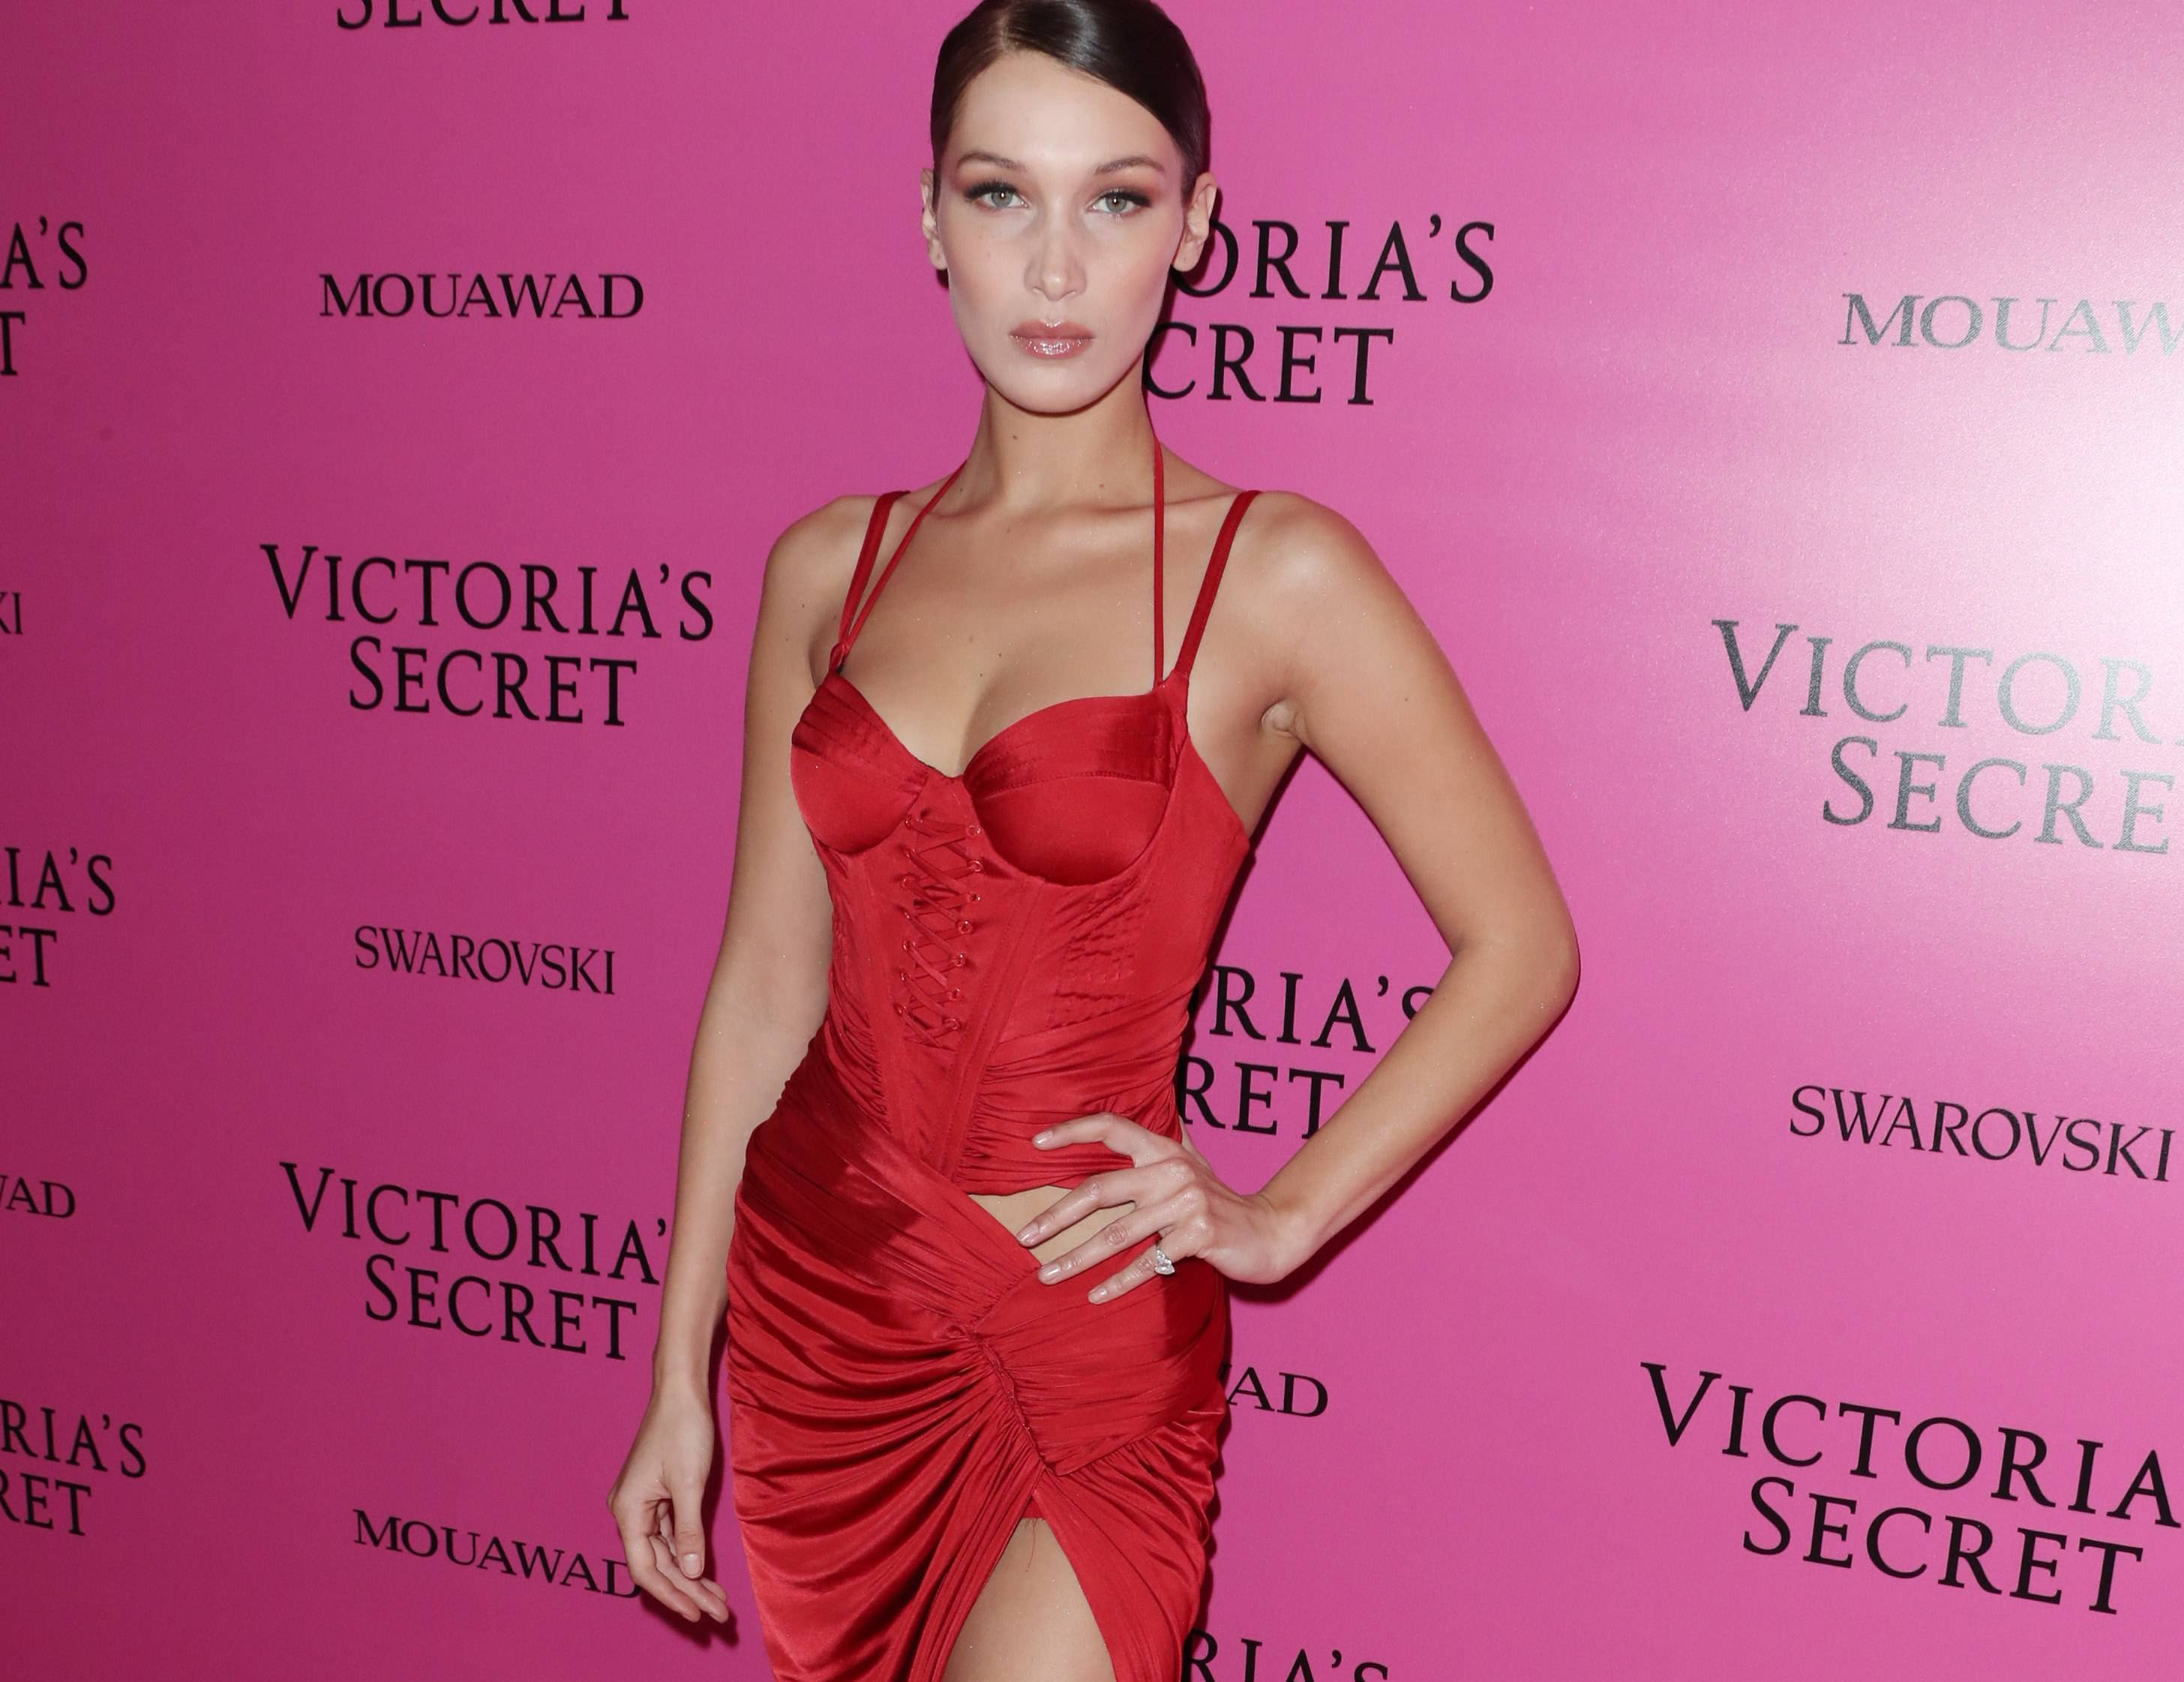 Bella Hadid at the 2017 Victoria's Secret Fashion Show After Party in Shanghai on November 20, 2017